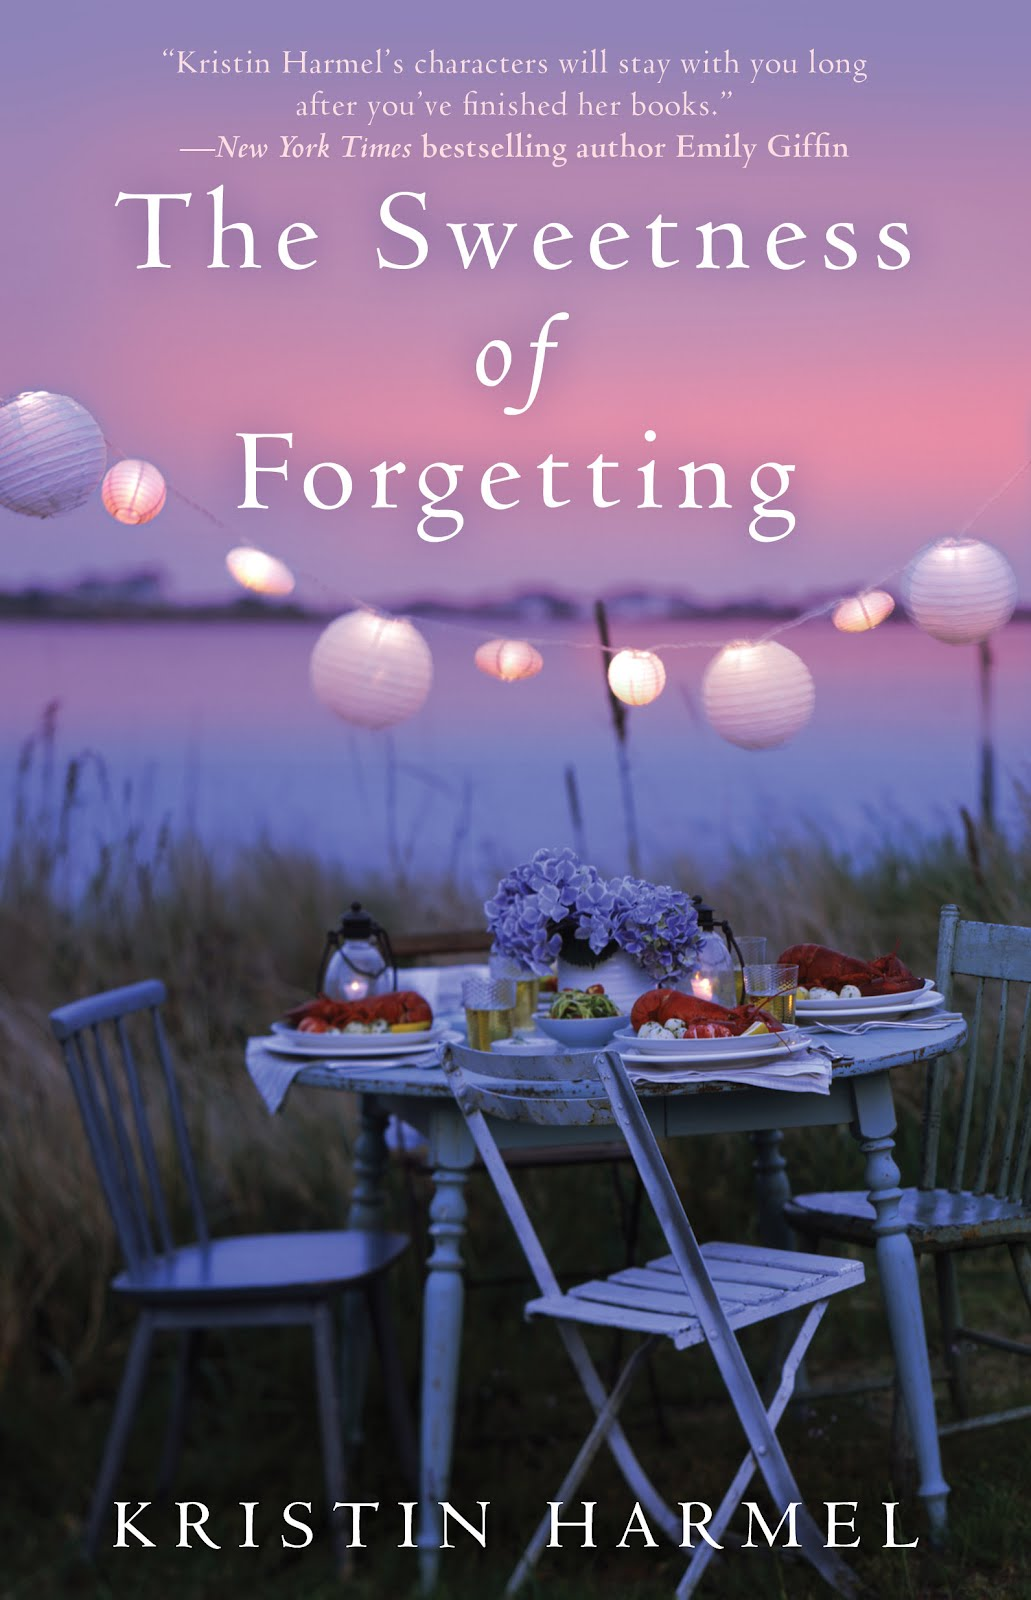 lit central book review the sweetness of forgetting